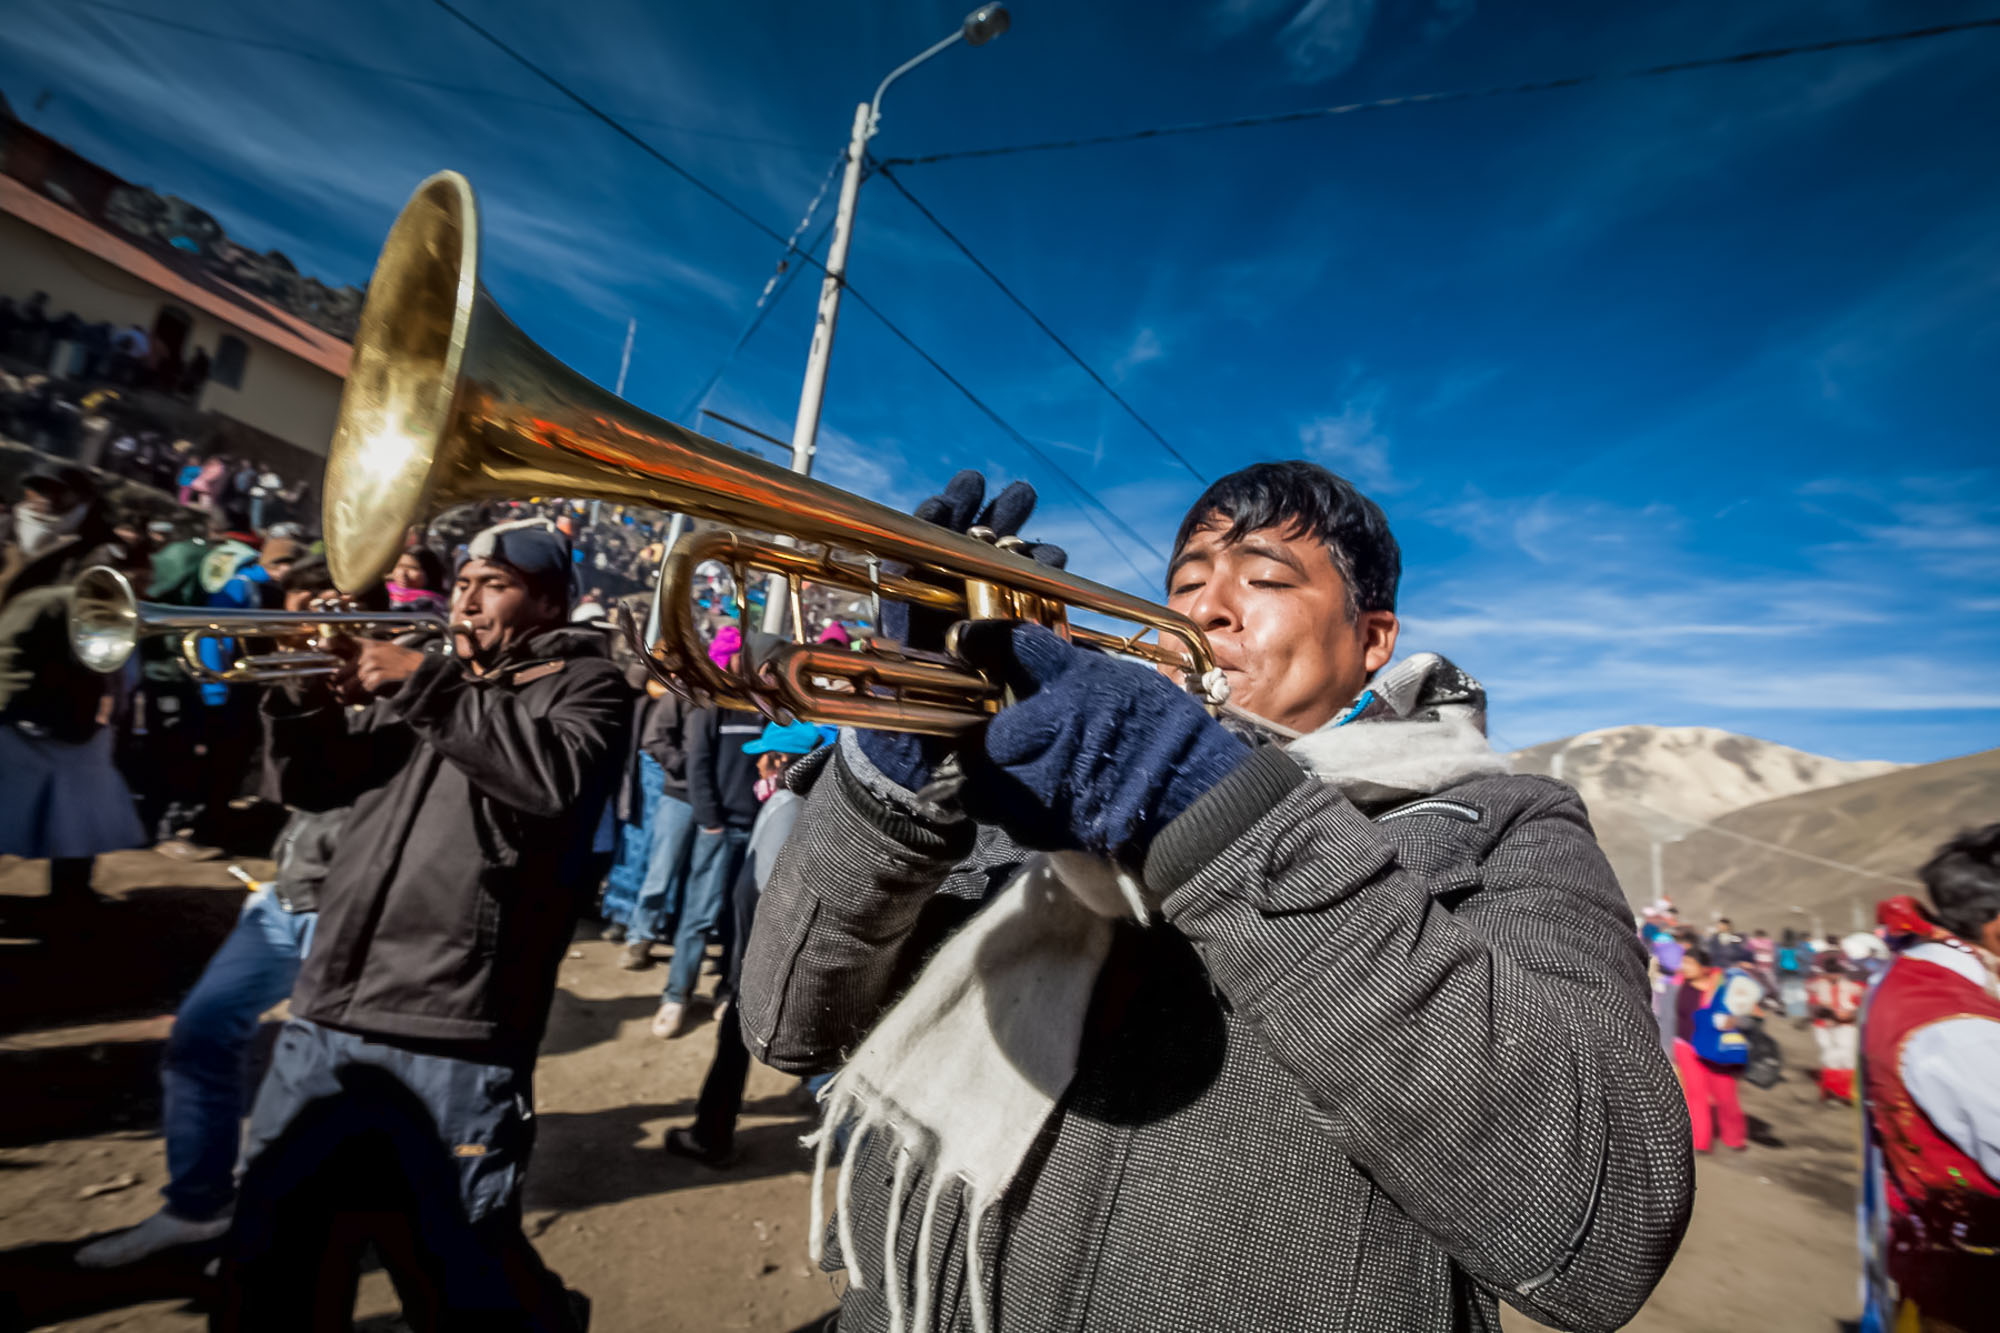 Trumpet player in a street parade we watched on a Peru adventure tour